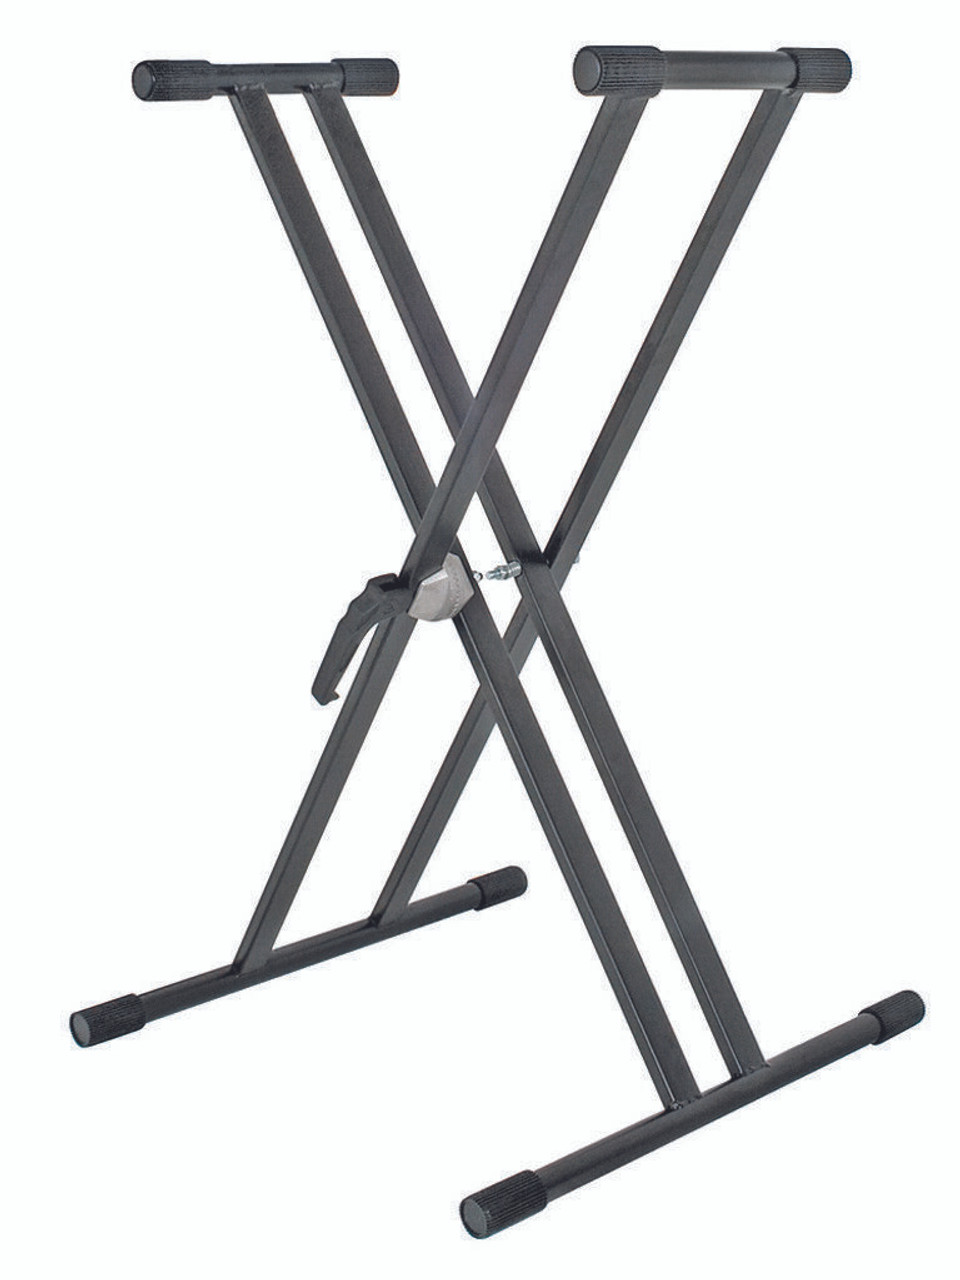 Short double braced X stand (162)